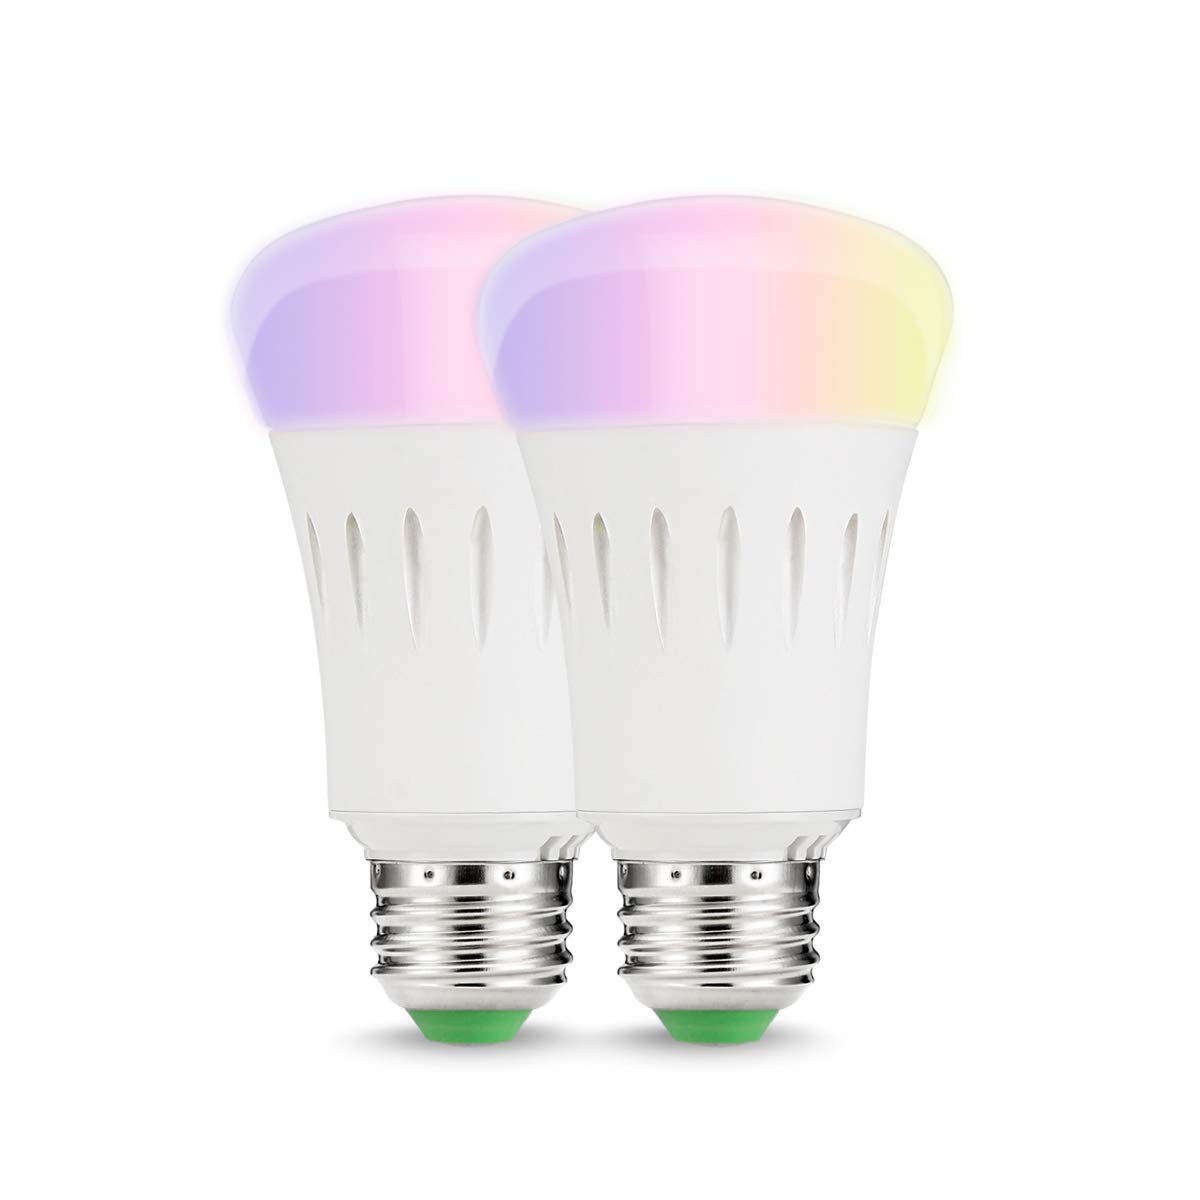 LOHAS Alexa Smart LED WiFi Bulbs, 9W A60 E27 Colour Changing Light Bulb, Works with  Alexa, Google Home & IFTTT, 60W Equivalent, Remote Controlled, 2 Pack